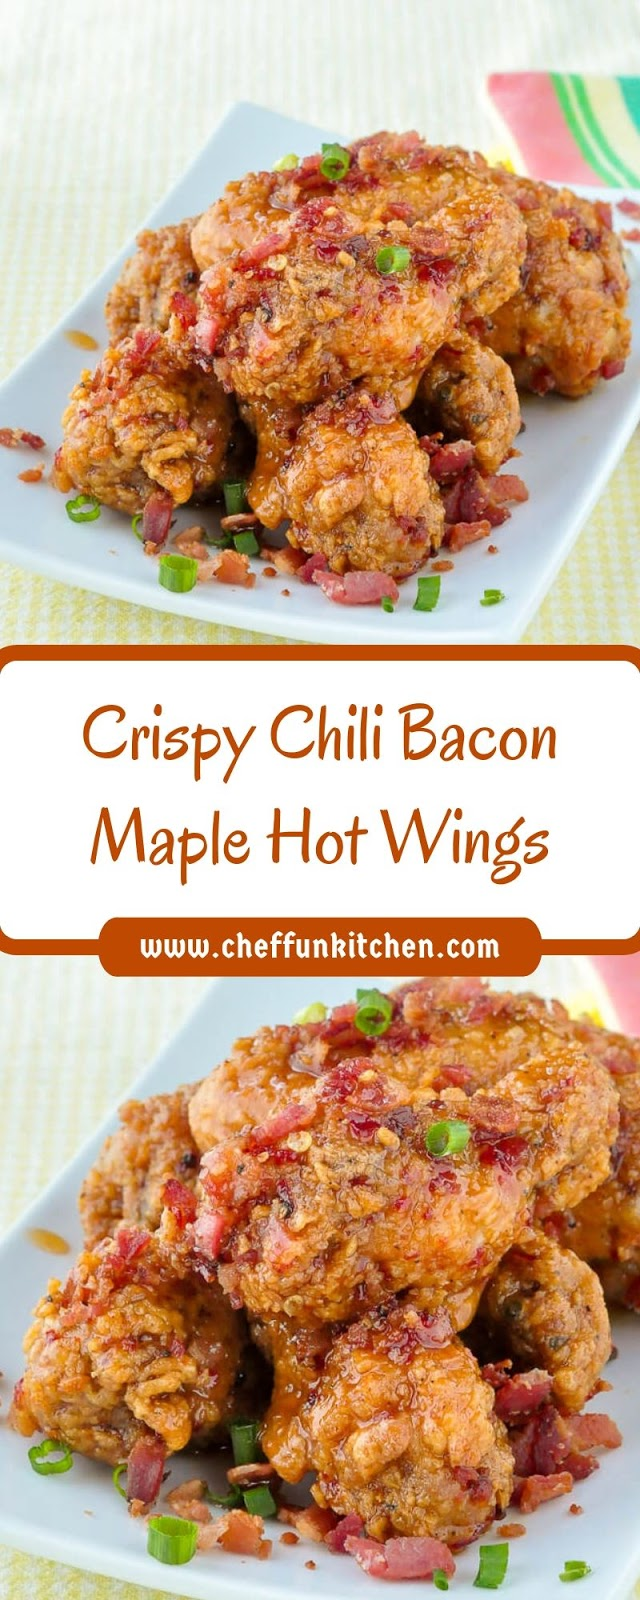 Crispy Chili Bacon Maple Hot Wings